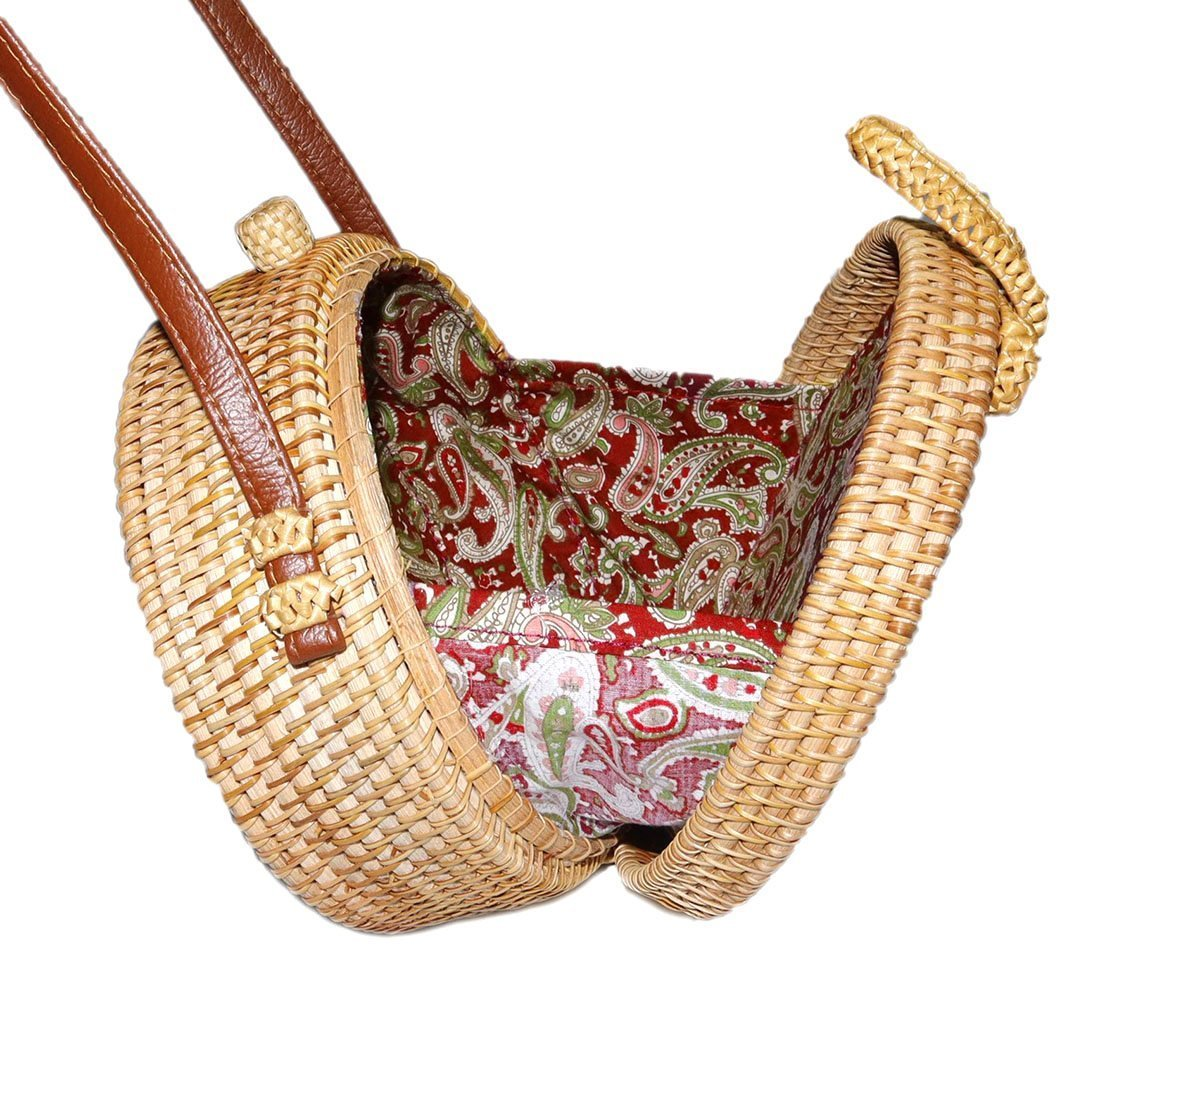 Happy Lily Women Handwoven Round Rattan Bag, Round Woven Straw Bag, Round Purse, Circle Tropical Beach Crossbody Bag with Cotton Fabric Inside and Cross Clasp